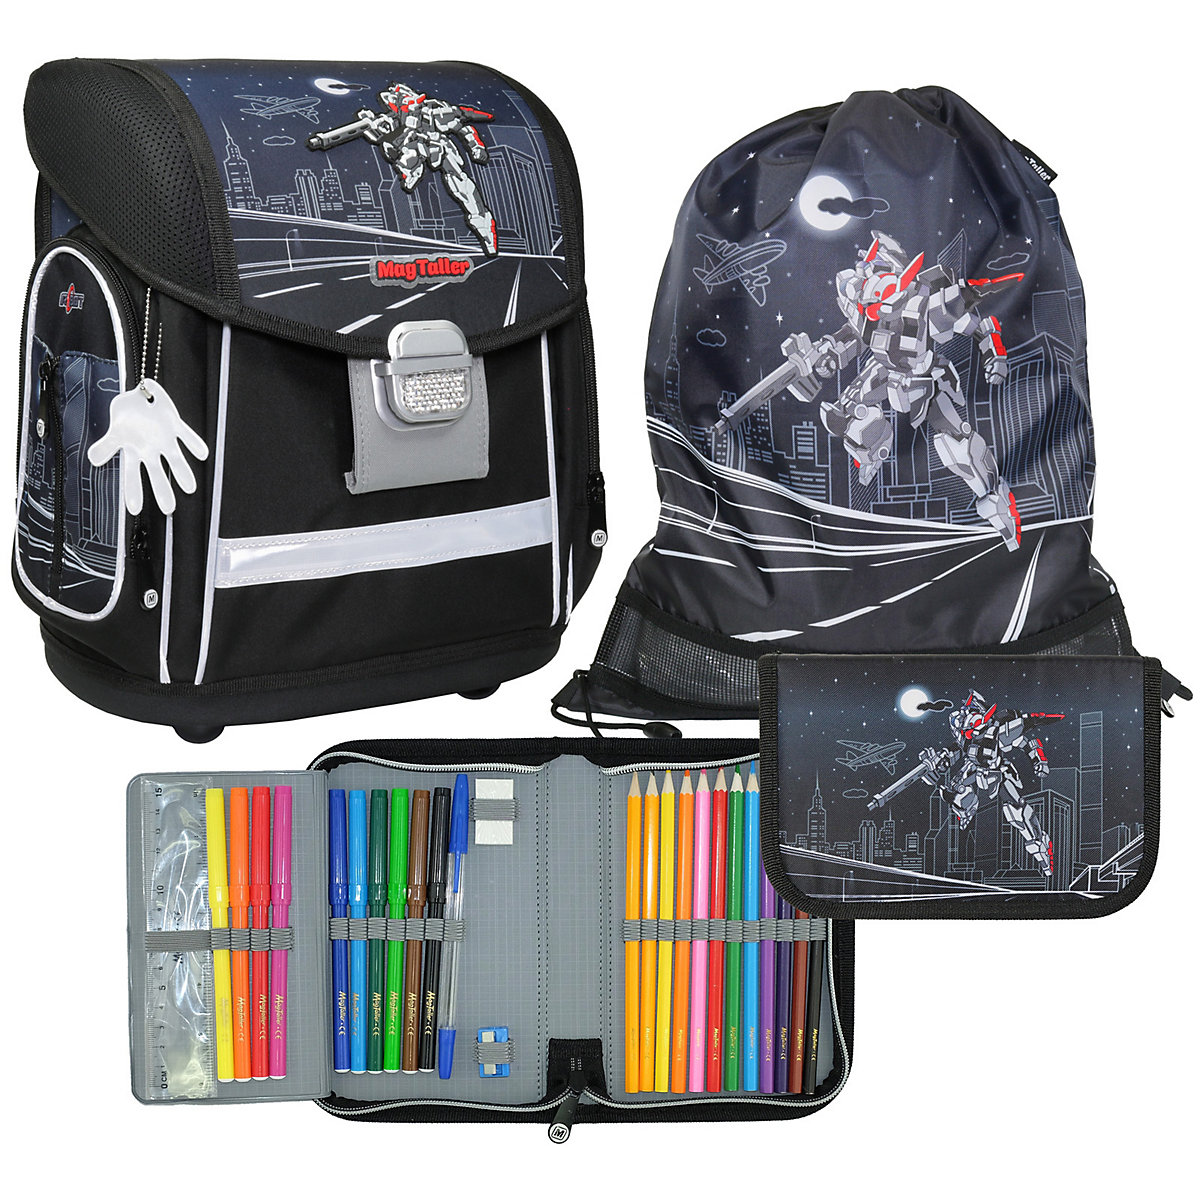 School Bags MAGTALLER 11154876 schoolbag backpack knapsacks orthopedic bag for boy and girl animals flower sprints school bags magtaller 11154976 schoolbag backpack knapsacks orthopedic bag for boy and girl animals flower sprints